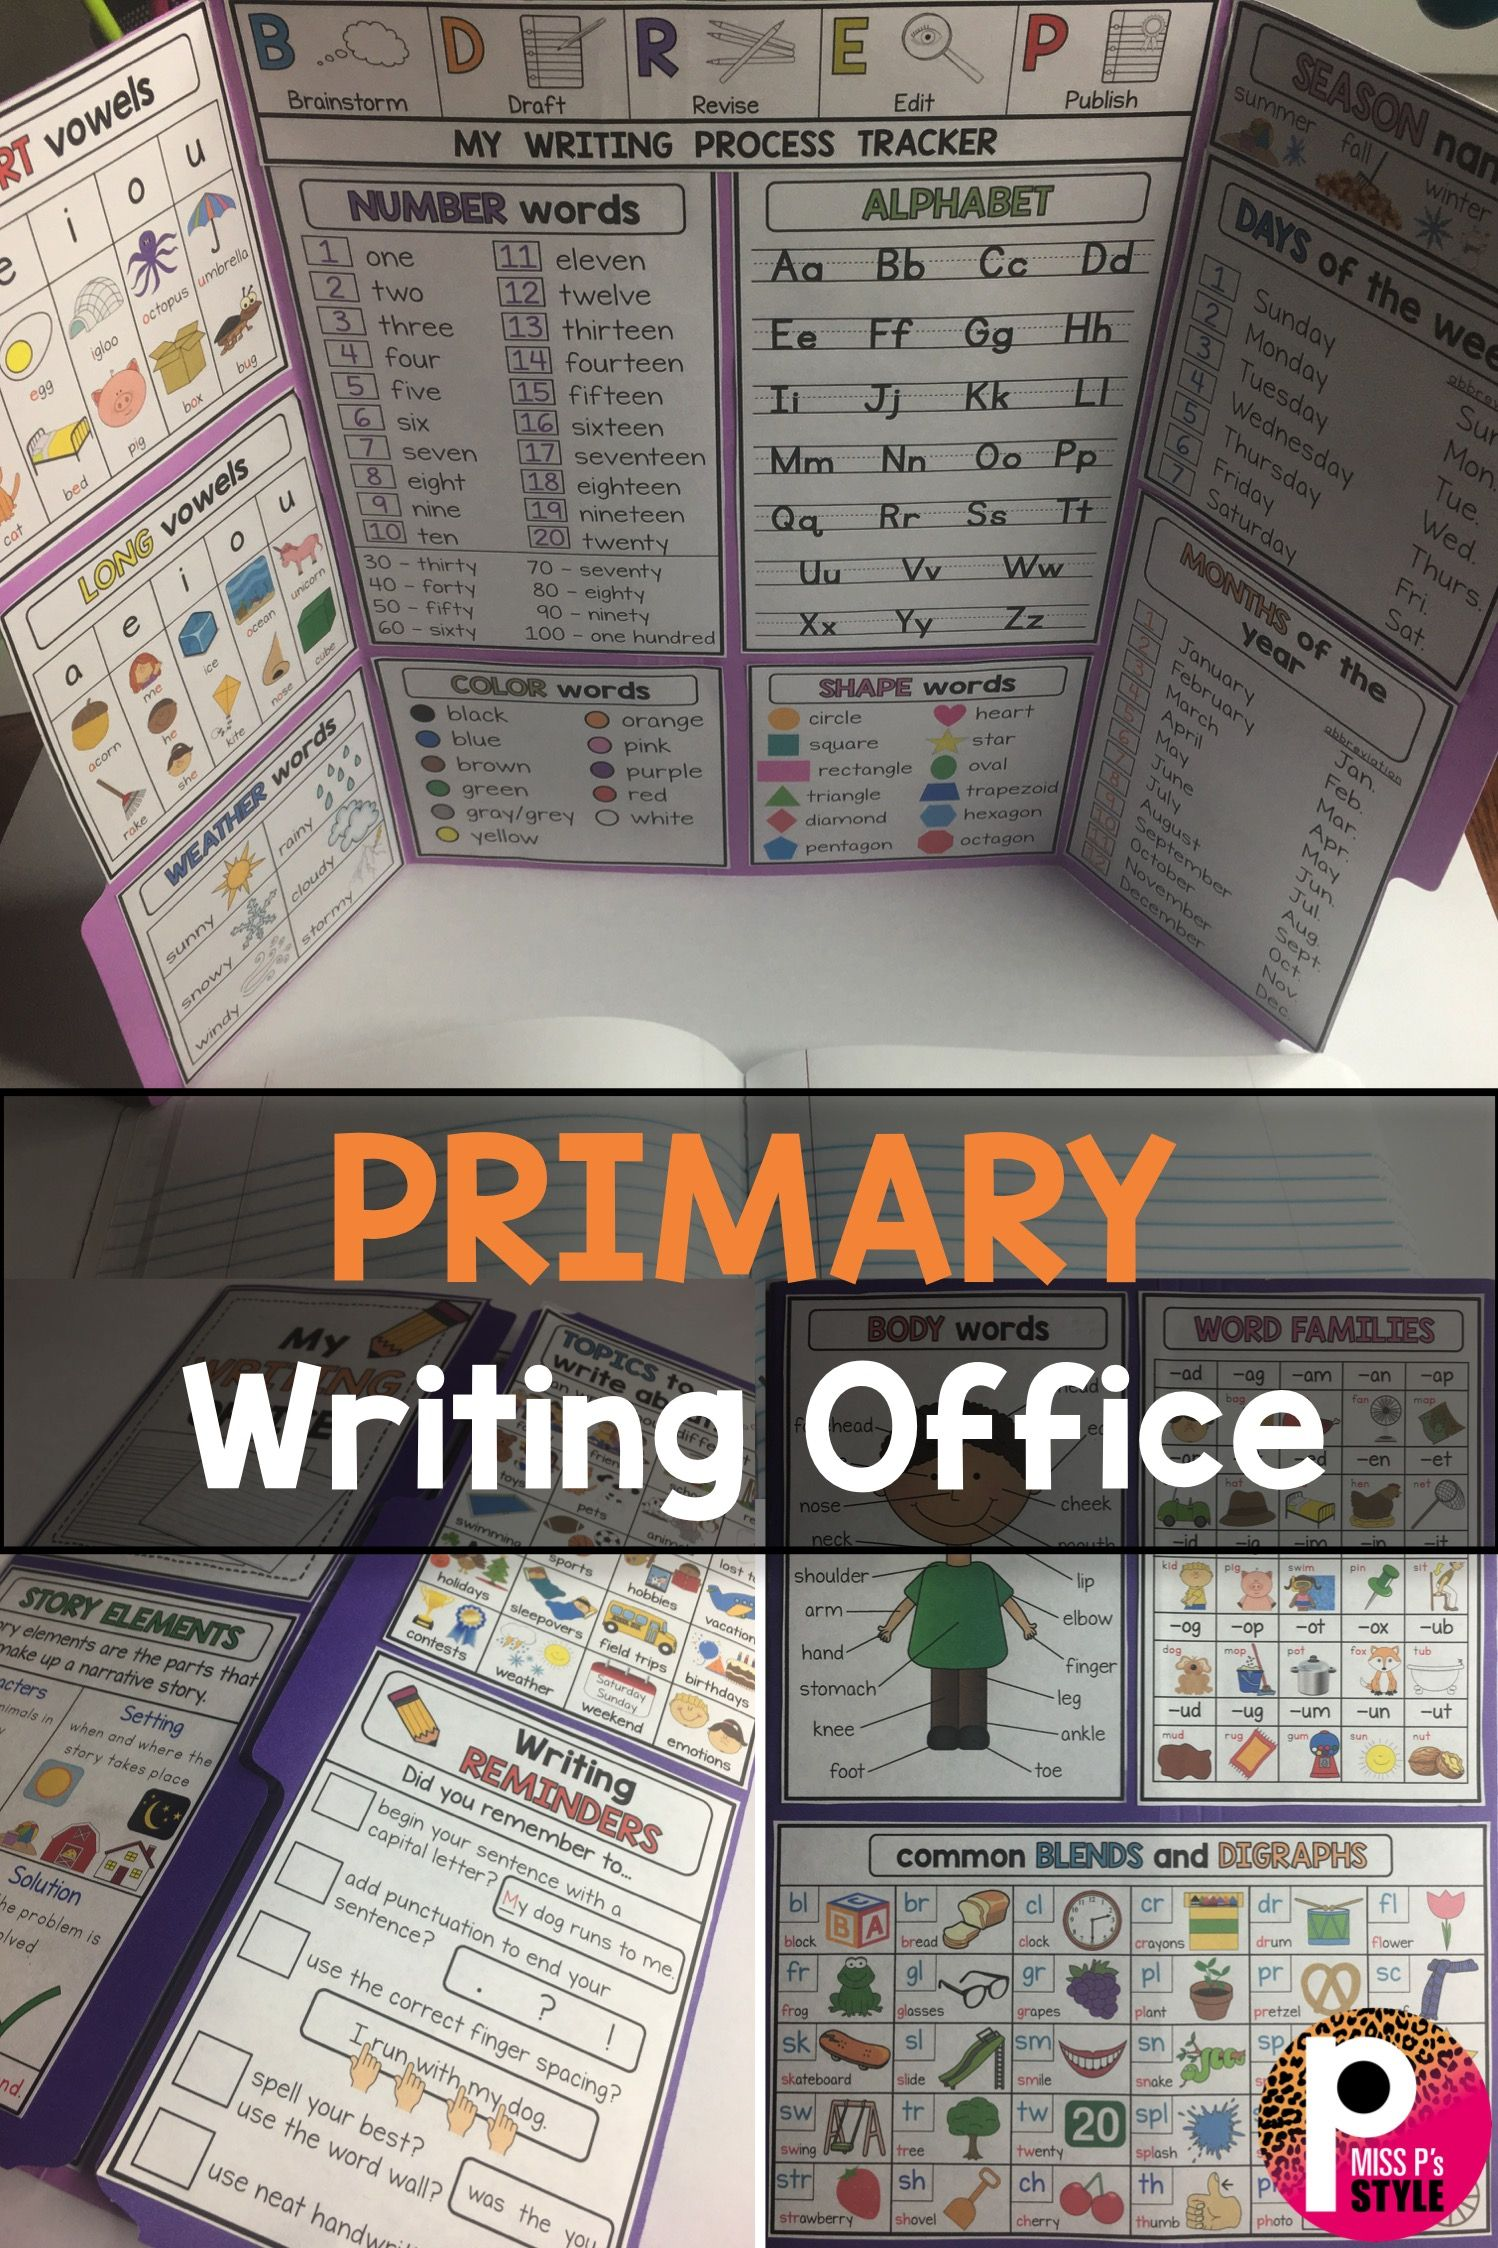 Primary Writing Office | Writing Offices, Kindergarten